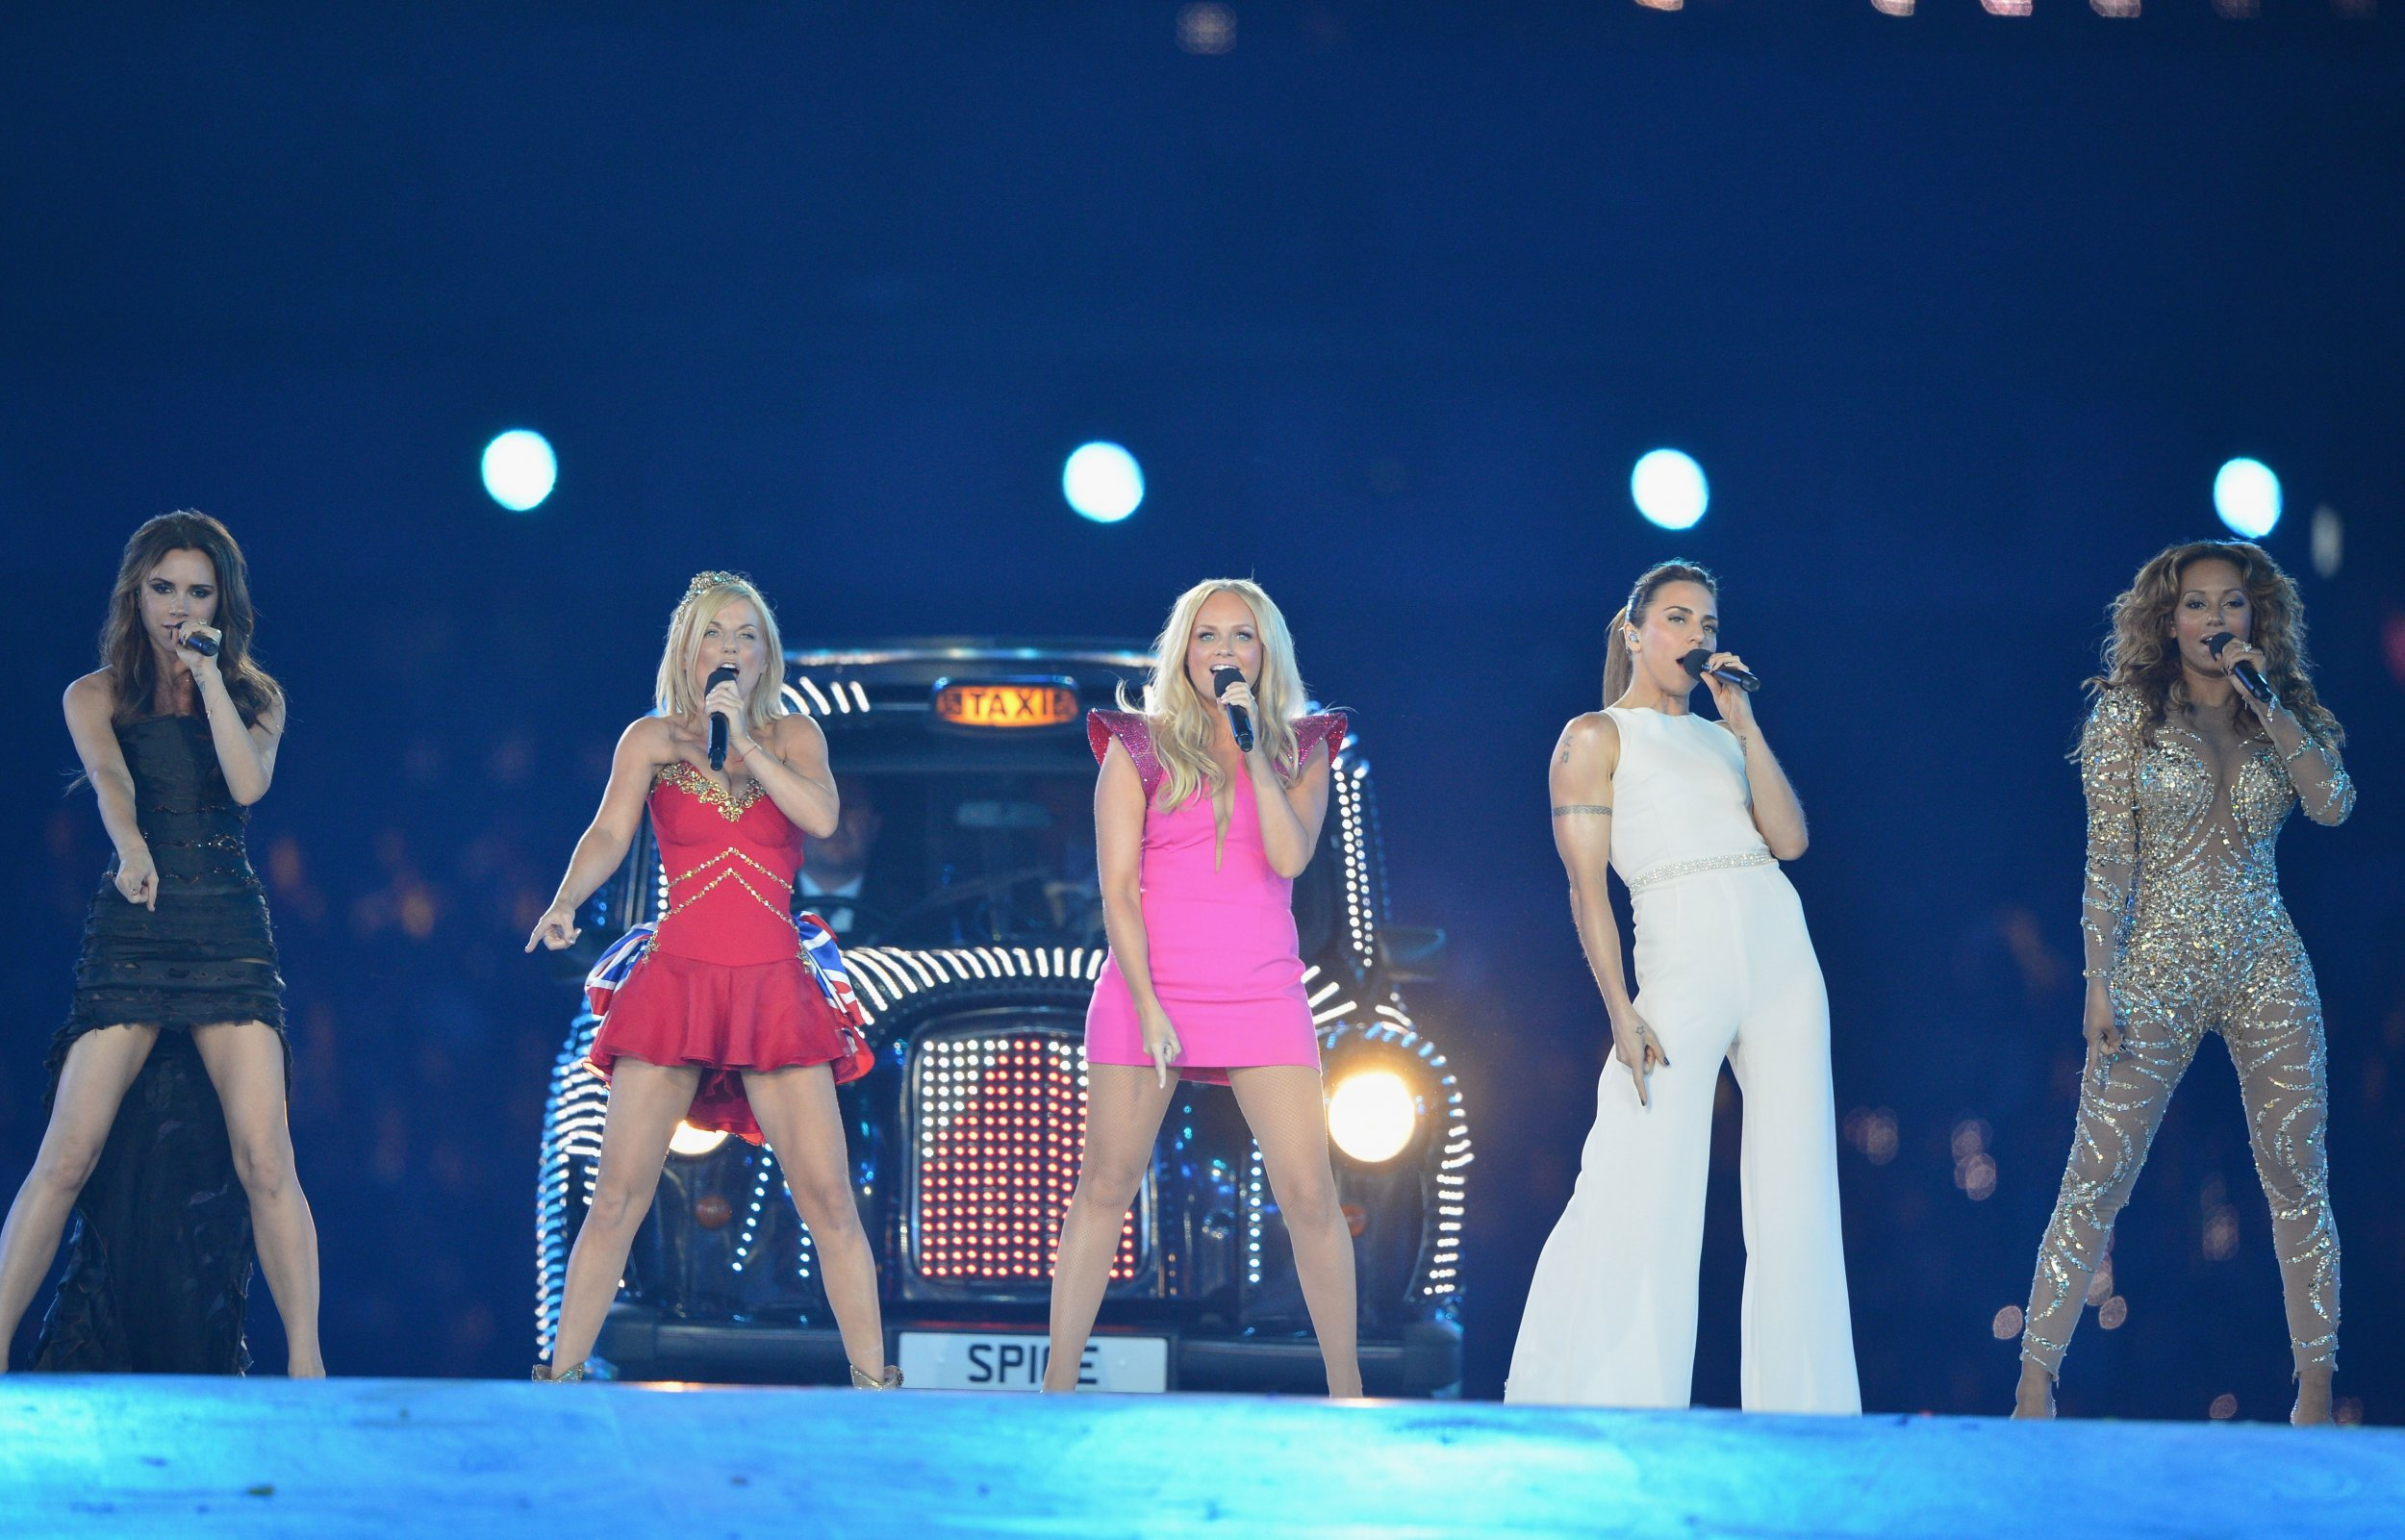 spice girls at the olympics in 2012